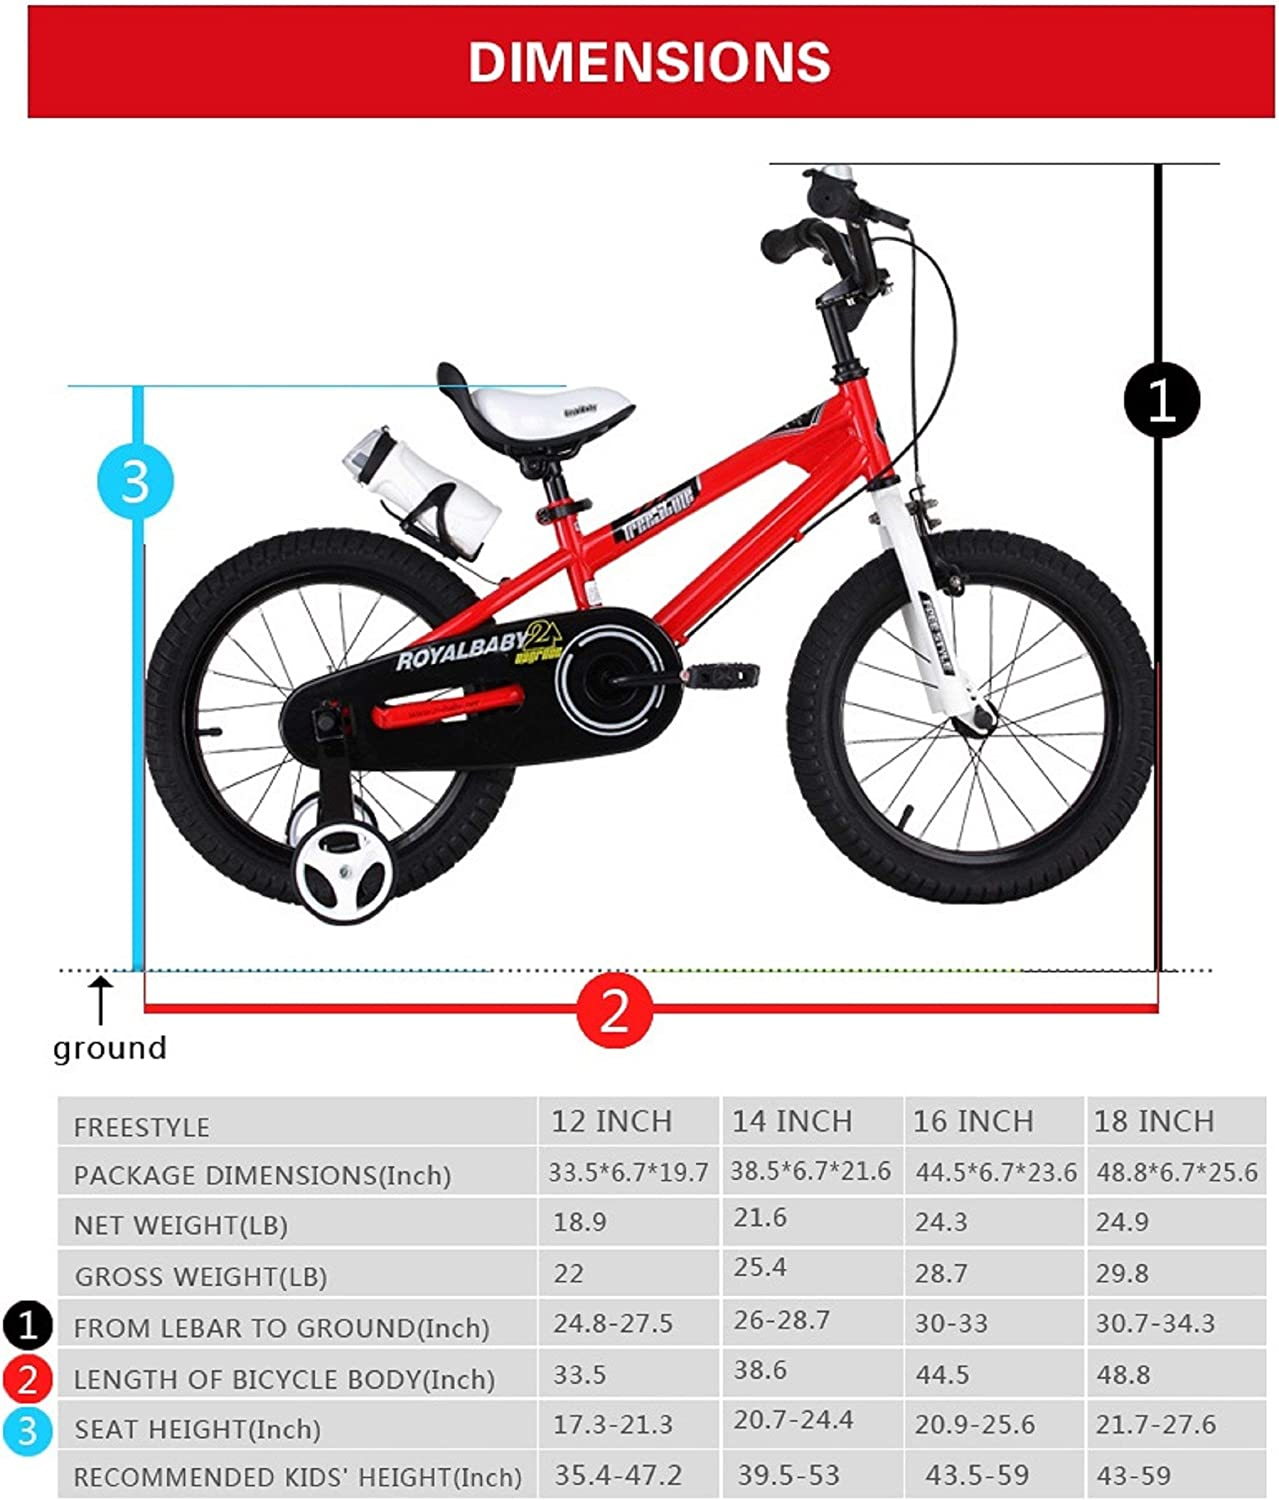 12 14 16/inch/with/Training/Wheels,/16 18 20/inch/with/Kickstand RoyalBaby/Freestyle/Kid/'s/Bike for Boys/and/Girls Renewed in/Multiple Colors